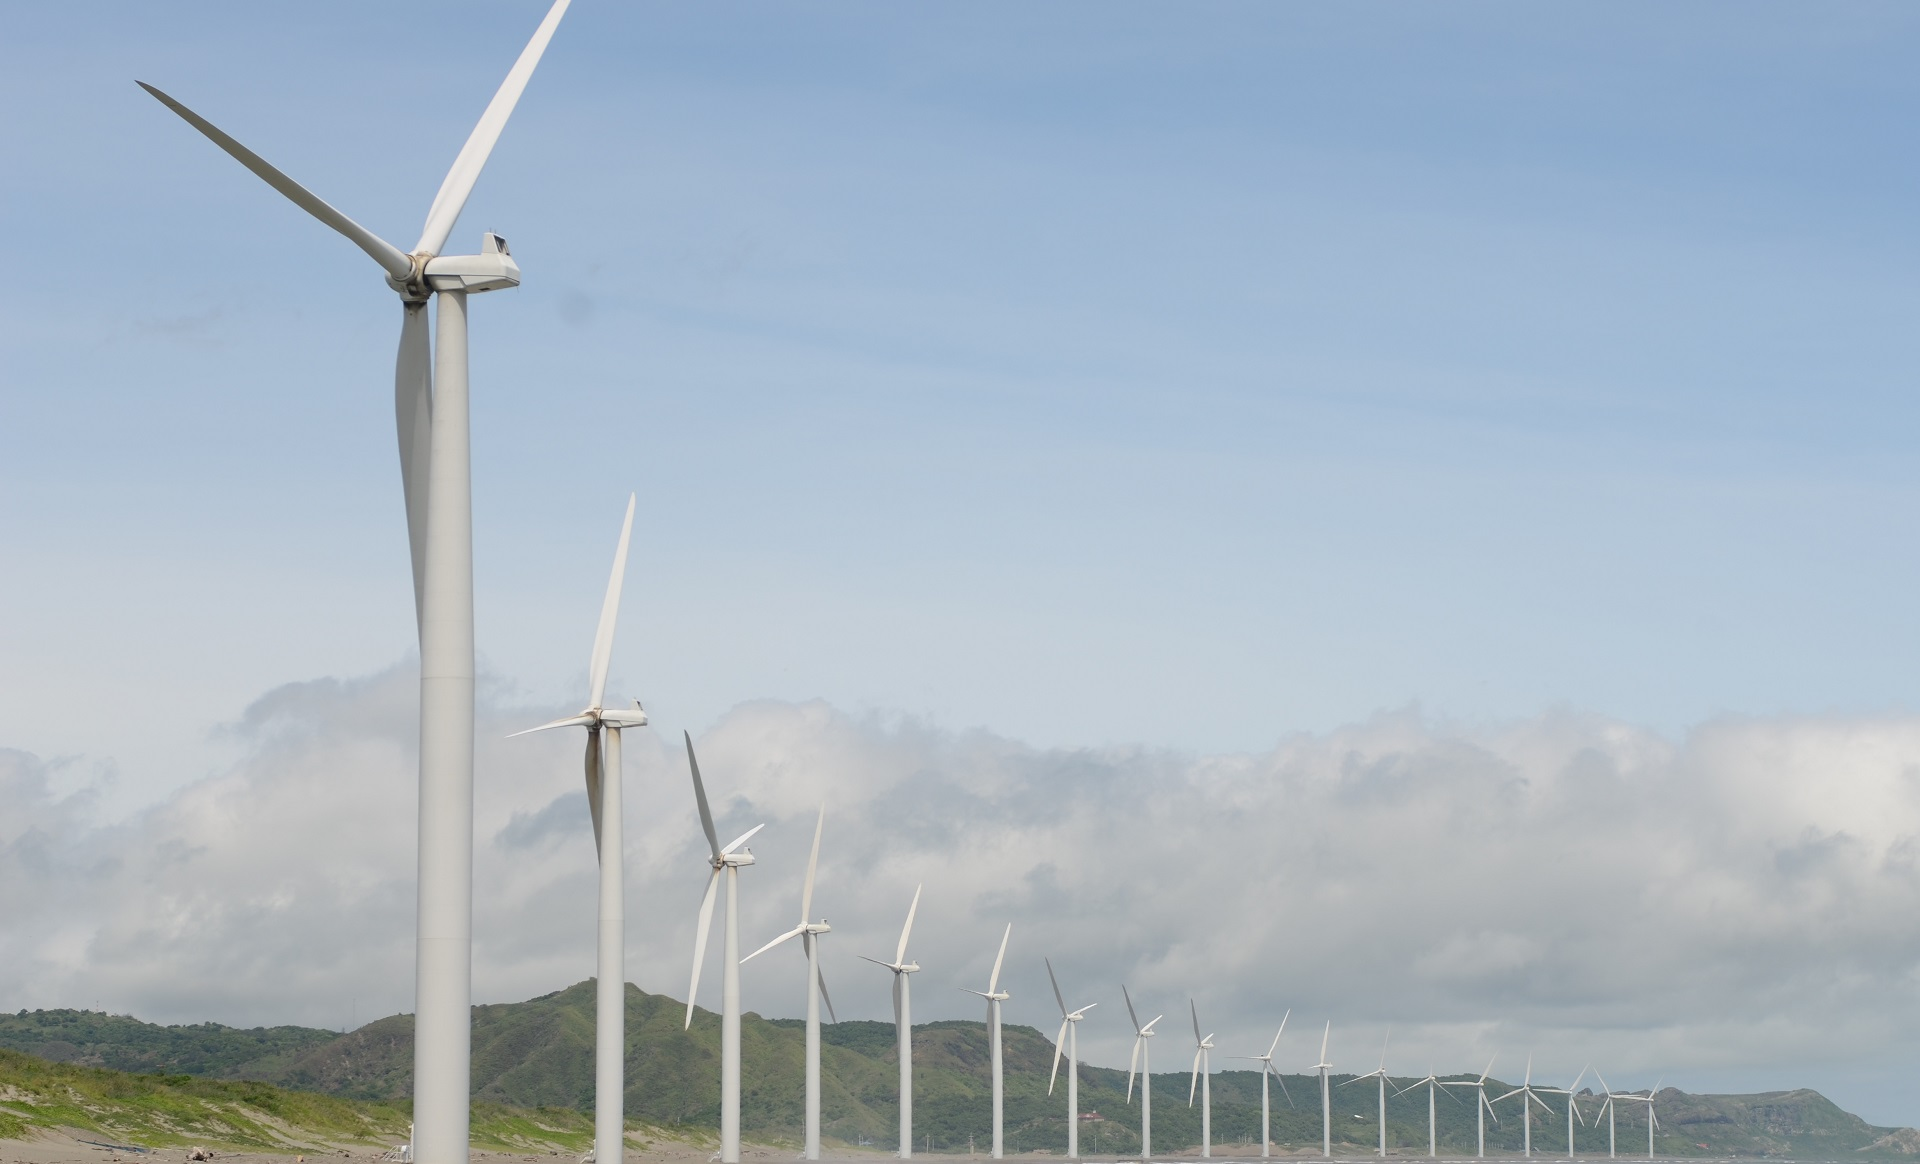 a row of wind turbines with a mountain in the background